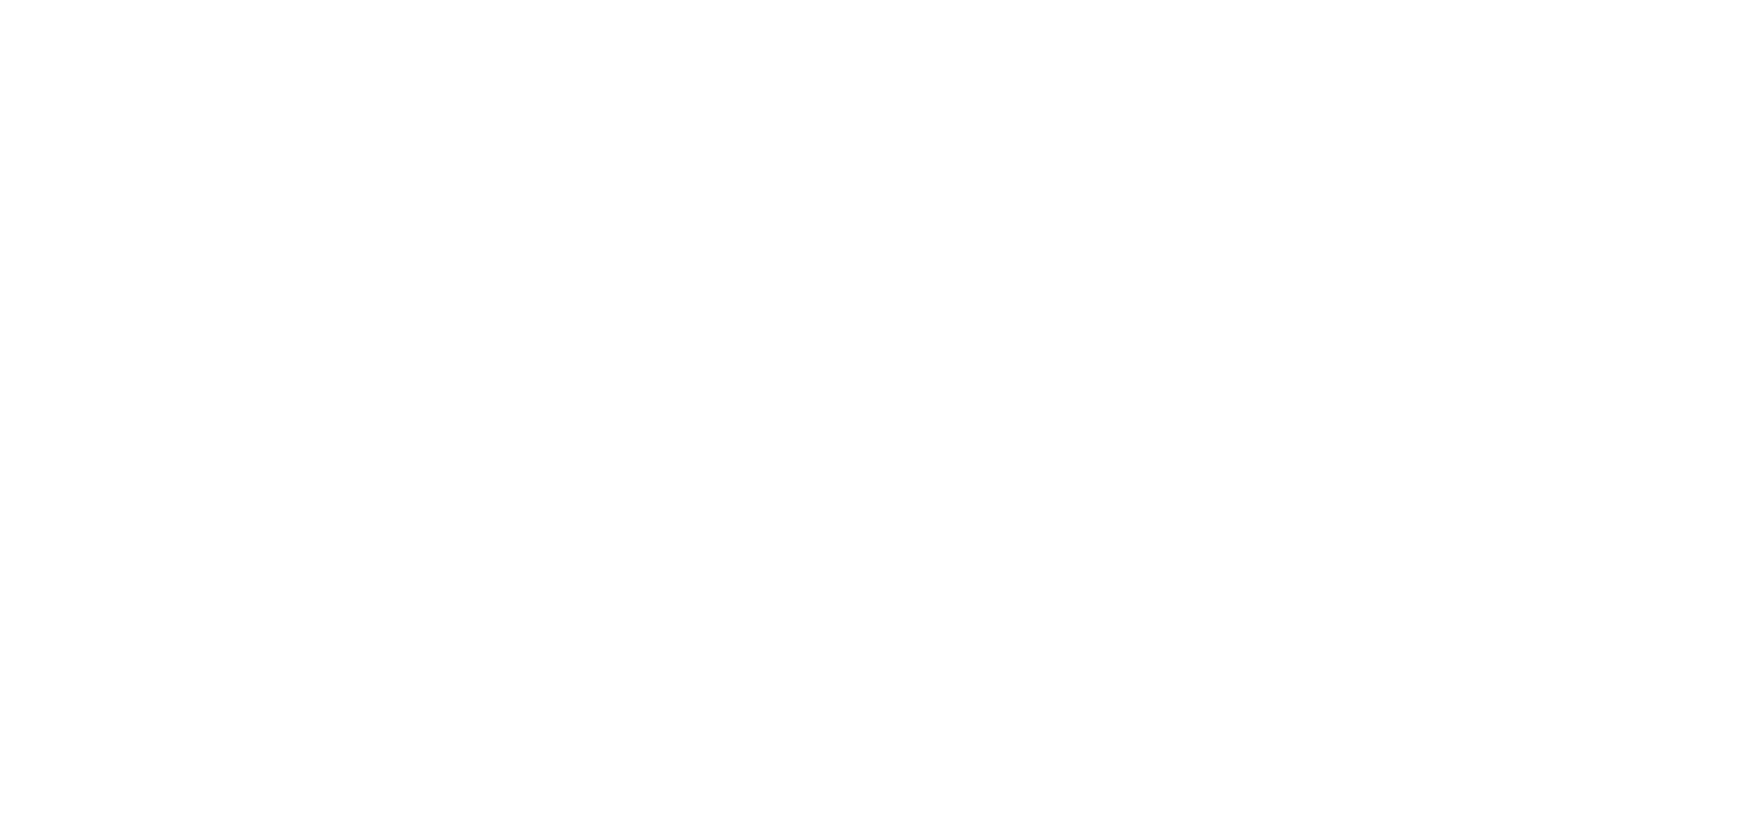 How Do I Contact Your Customer Service Team Virgin Experience Days